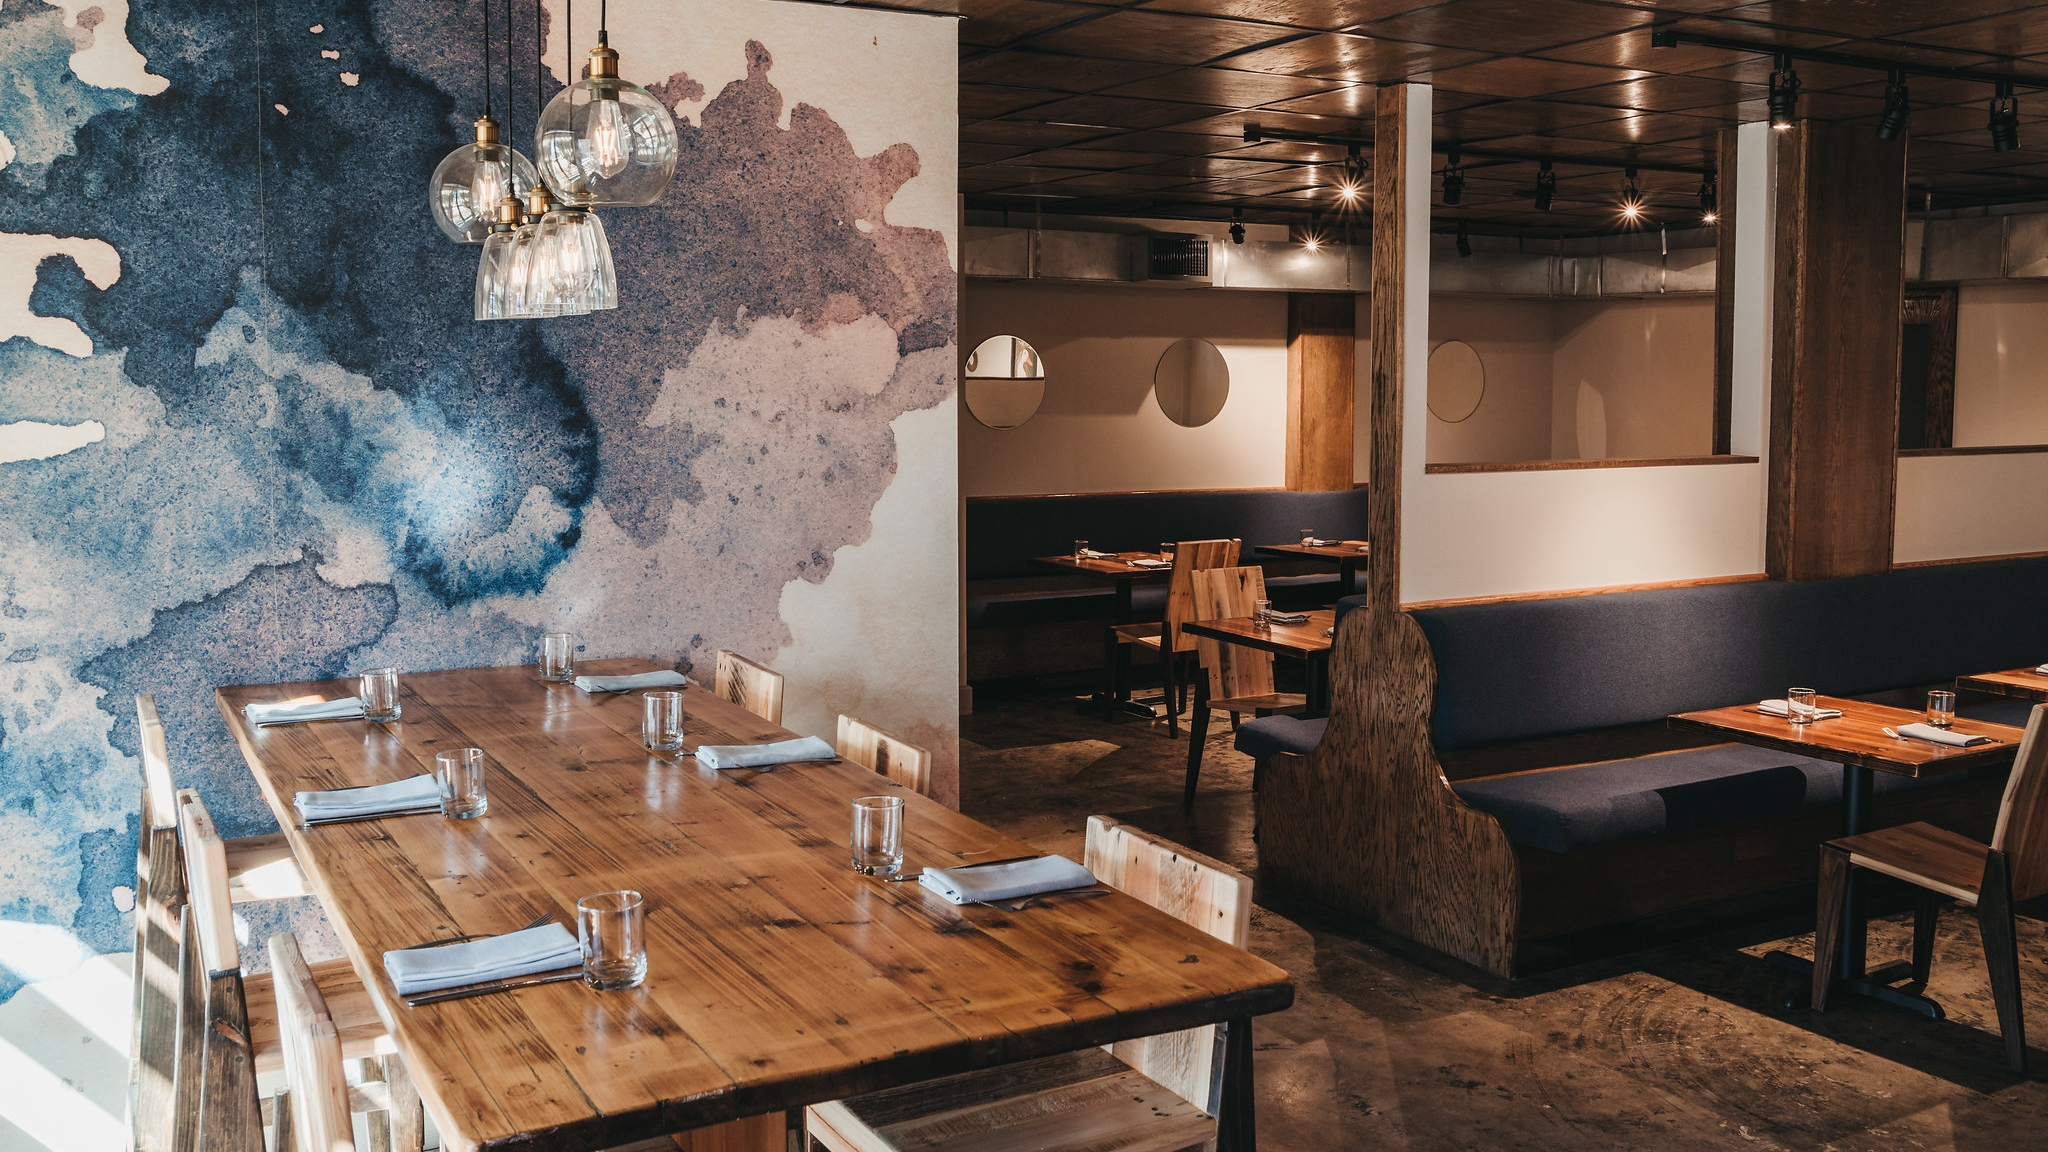 Intero's interior is intimate and inviting, allowing for a great dining experience. Courtesy photo